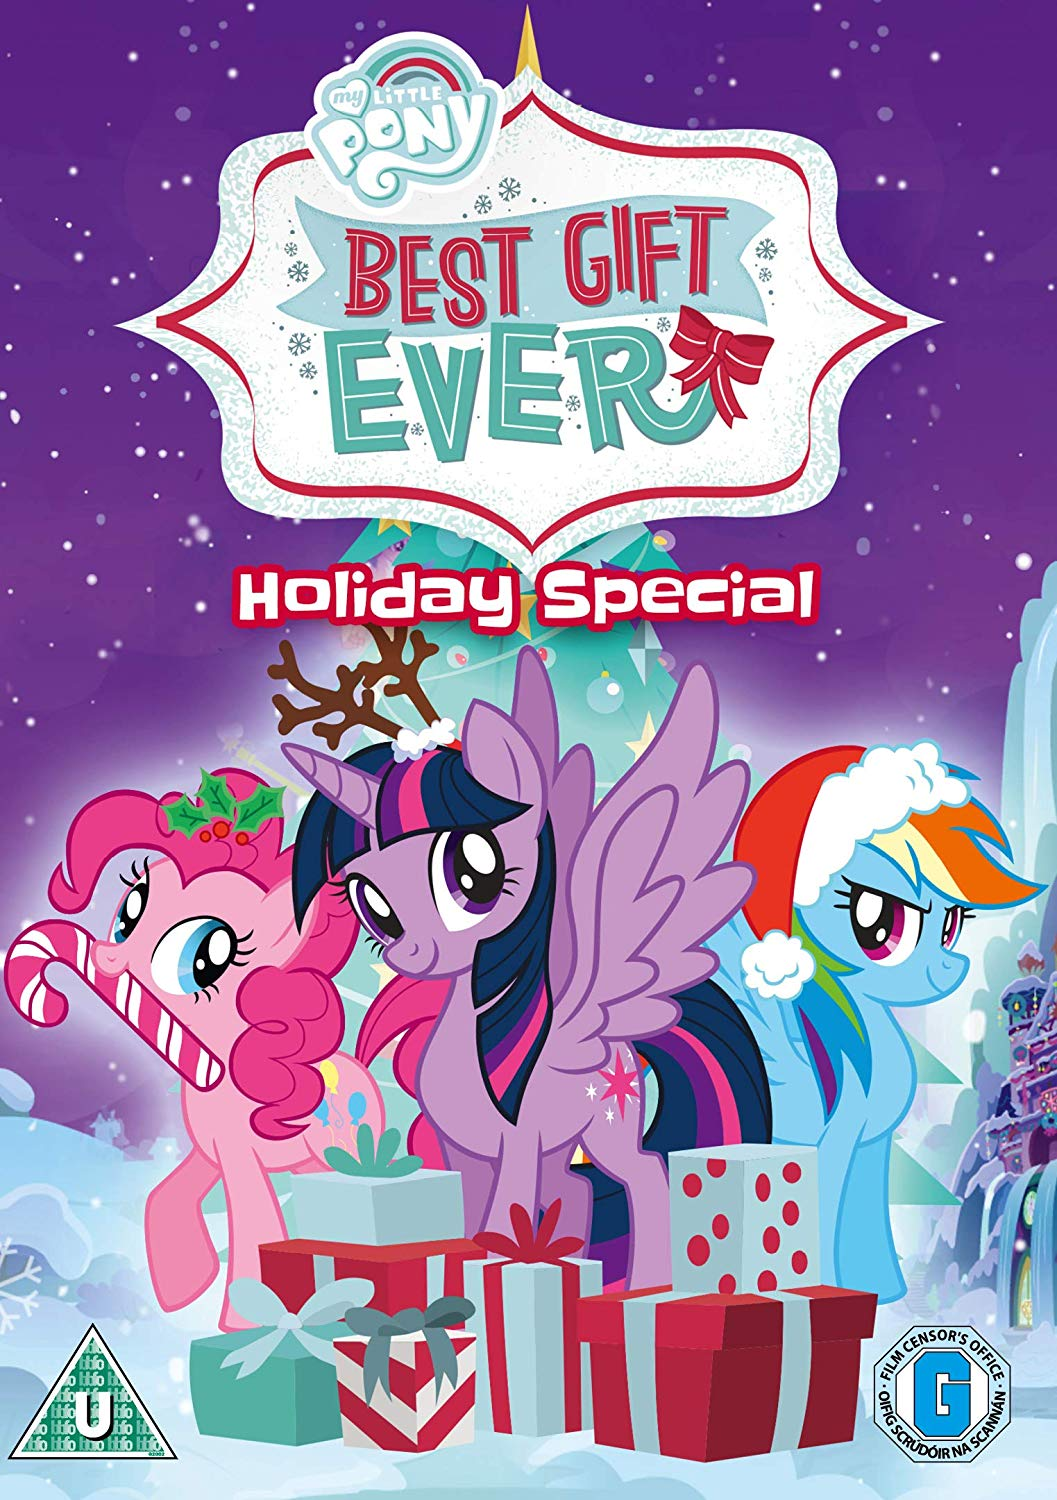 Equestria Daily - MLP Stuff!: My Little Pony - The Best Gift Ever ...